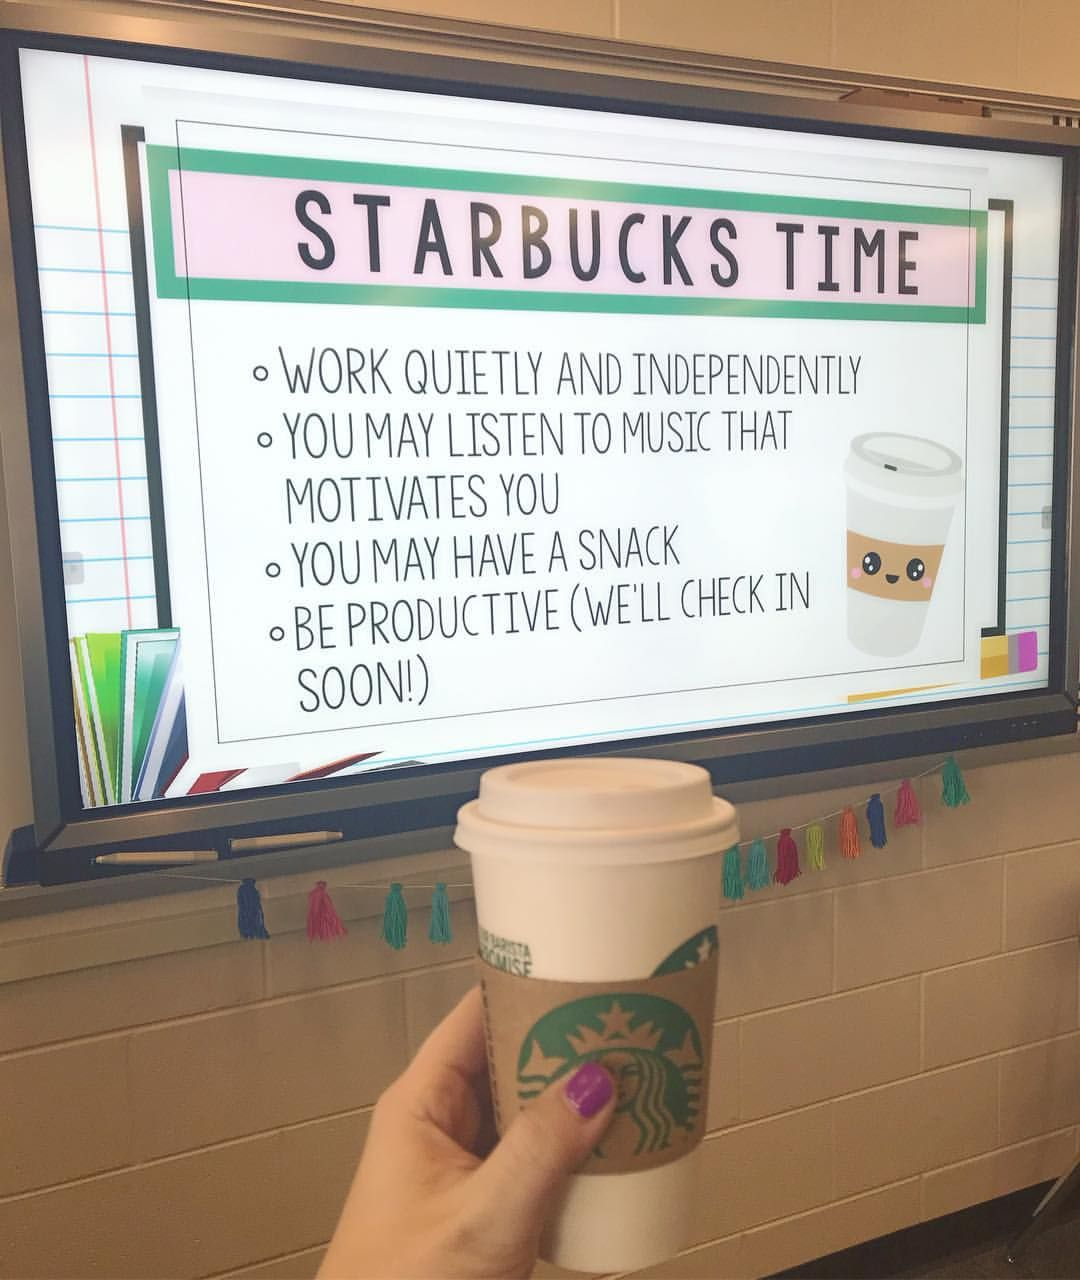 On Friday I Tried Something New Called Starbucks Time